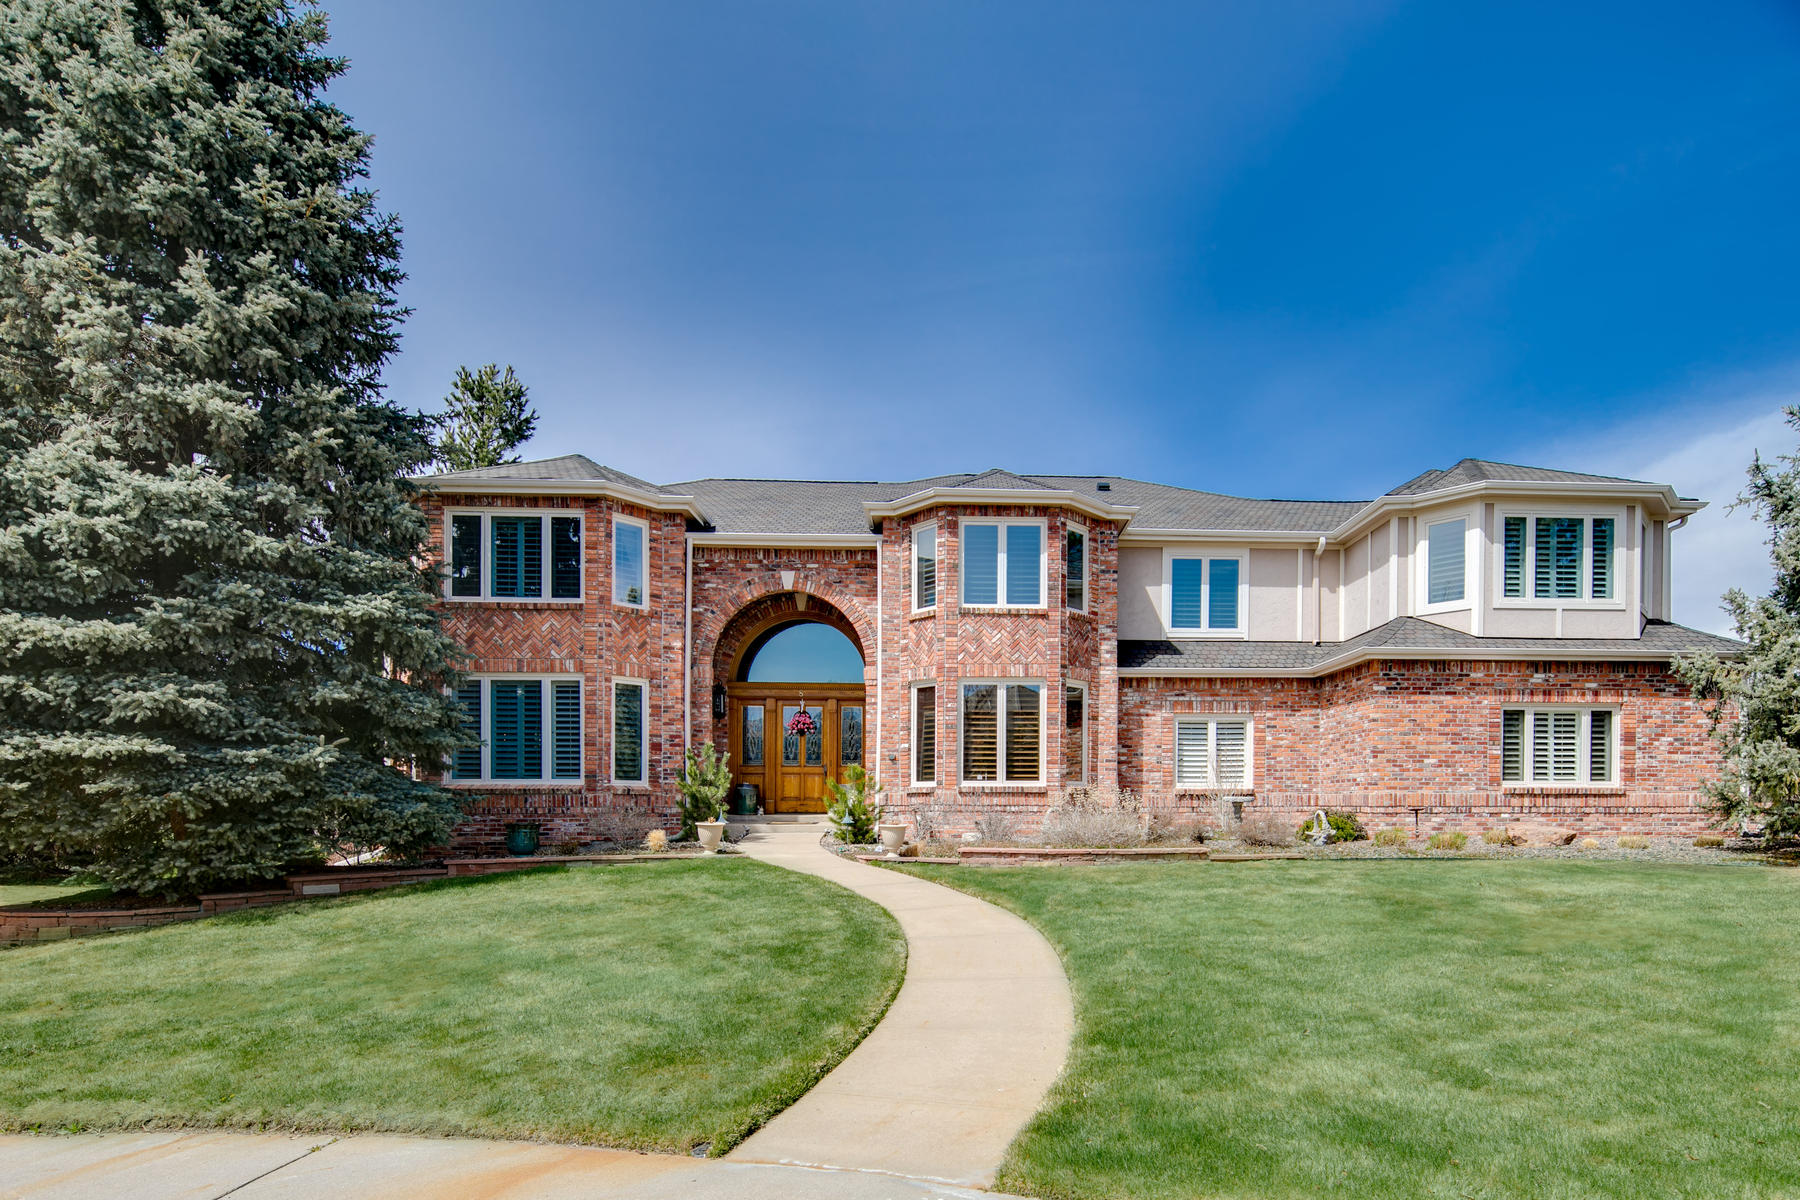 Single Family Home for Active at Gracefully poised a .47 acre cul-de-sac site showcasing majestic mountain views! 8 Red Tail Dr Highlands Ranch, Colorado 80126 United States